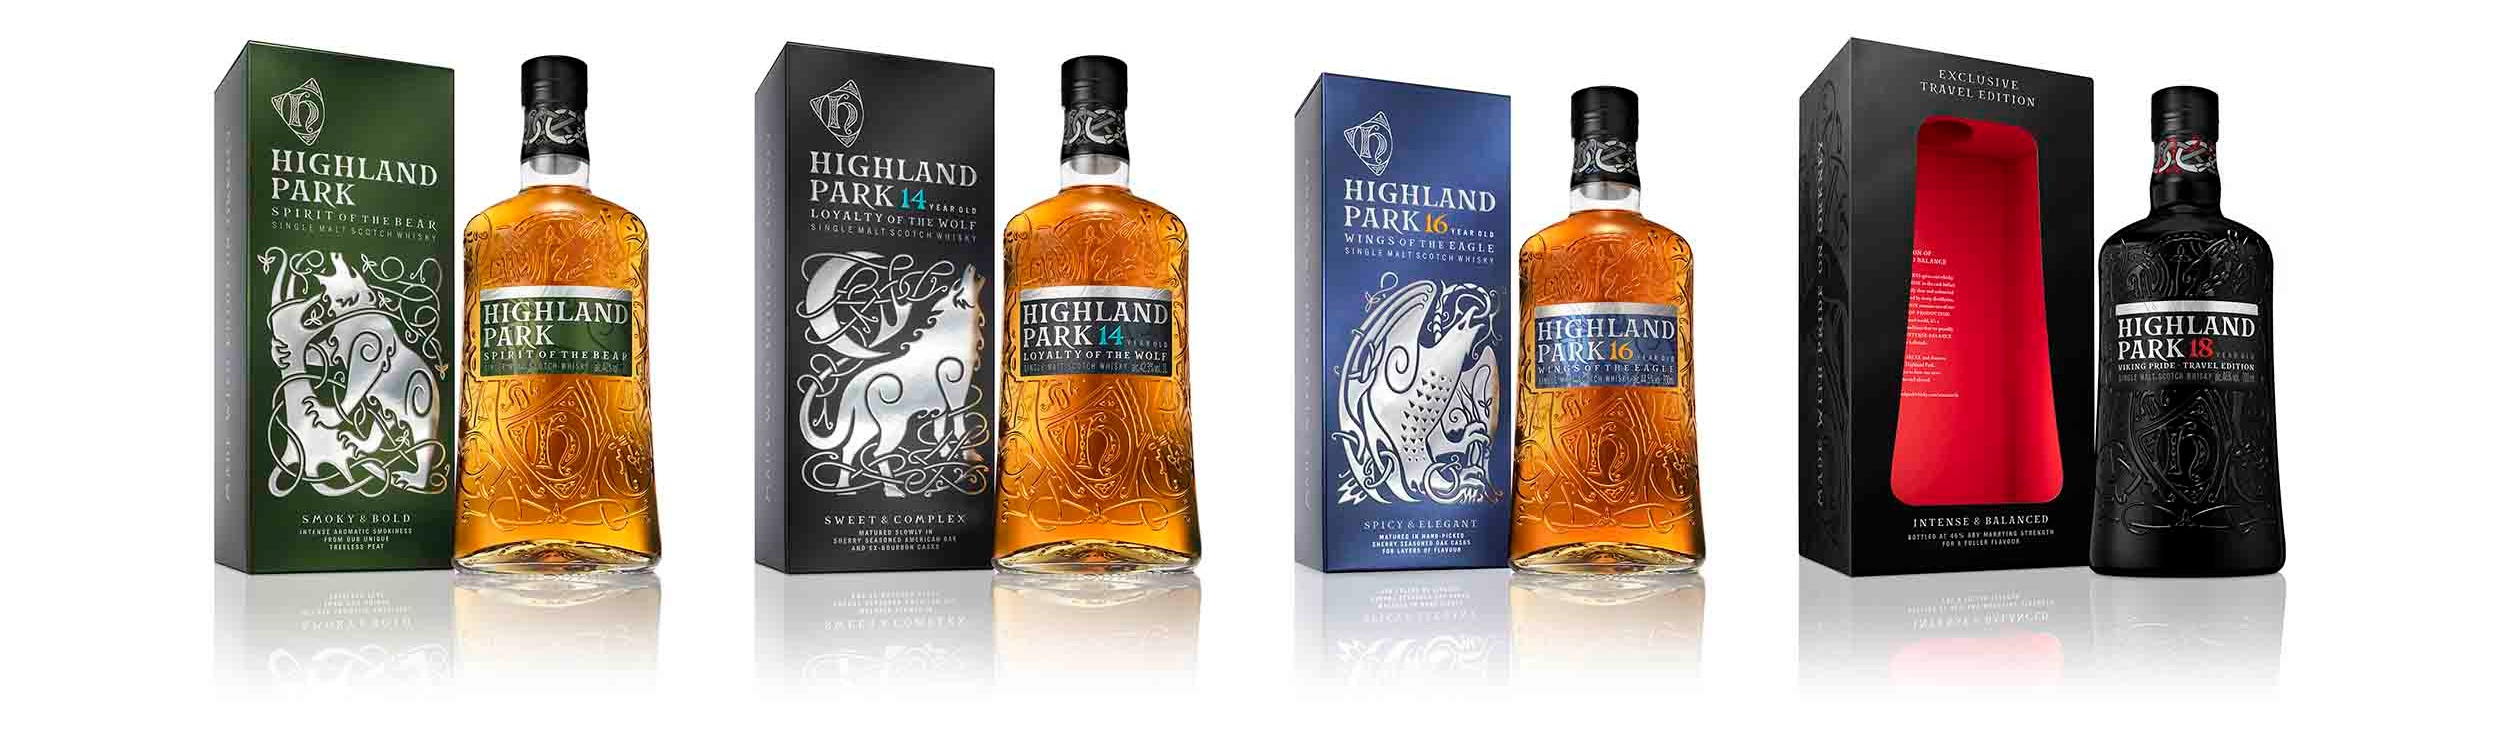 Mountain_Highland+Park_Travel+Retail+Range_010.jpg